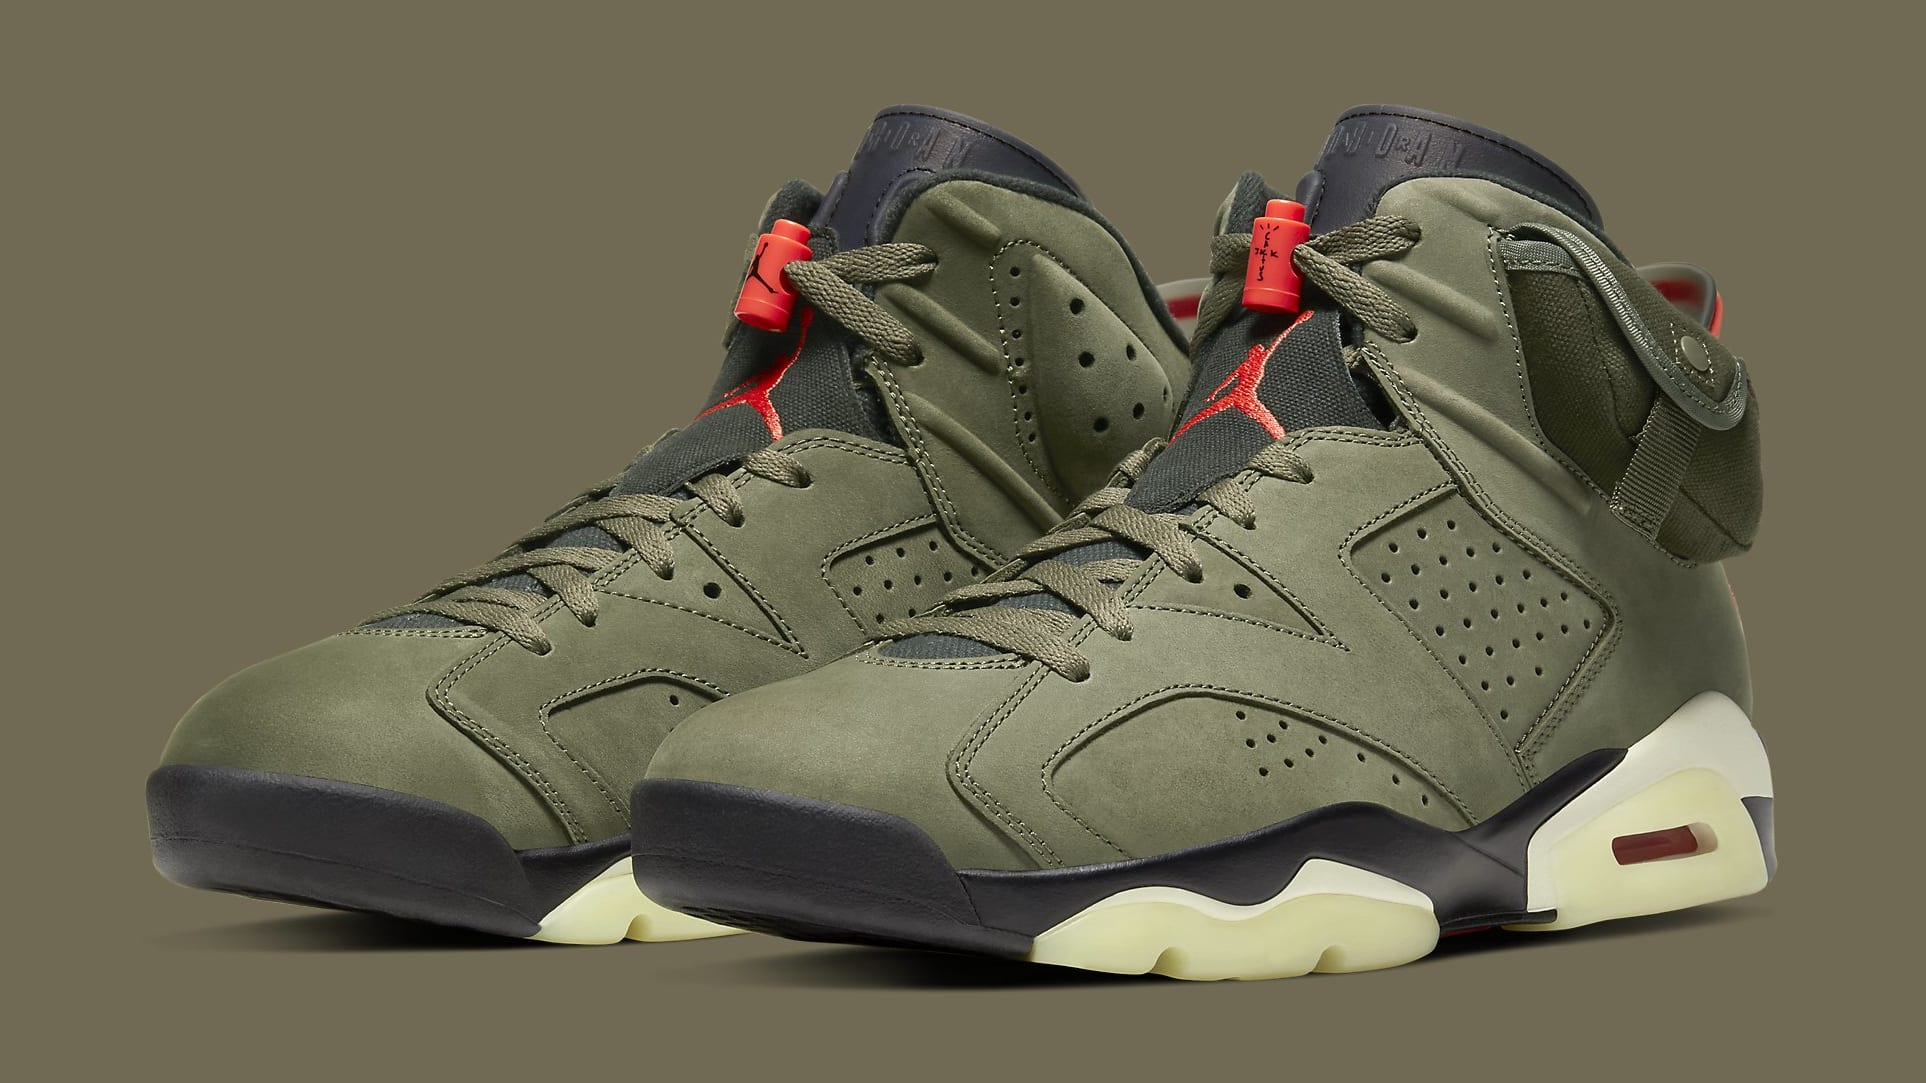 travis-scott-air-jordan-6-vi-retro-cn1084-200-pair